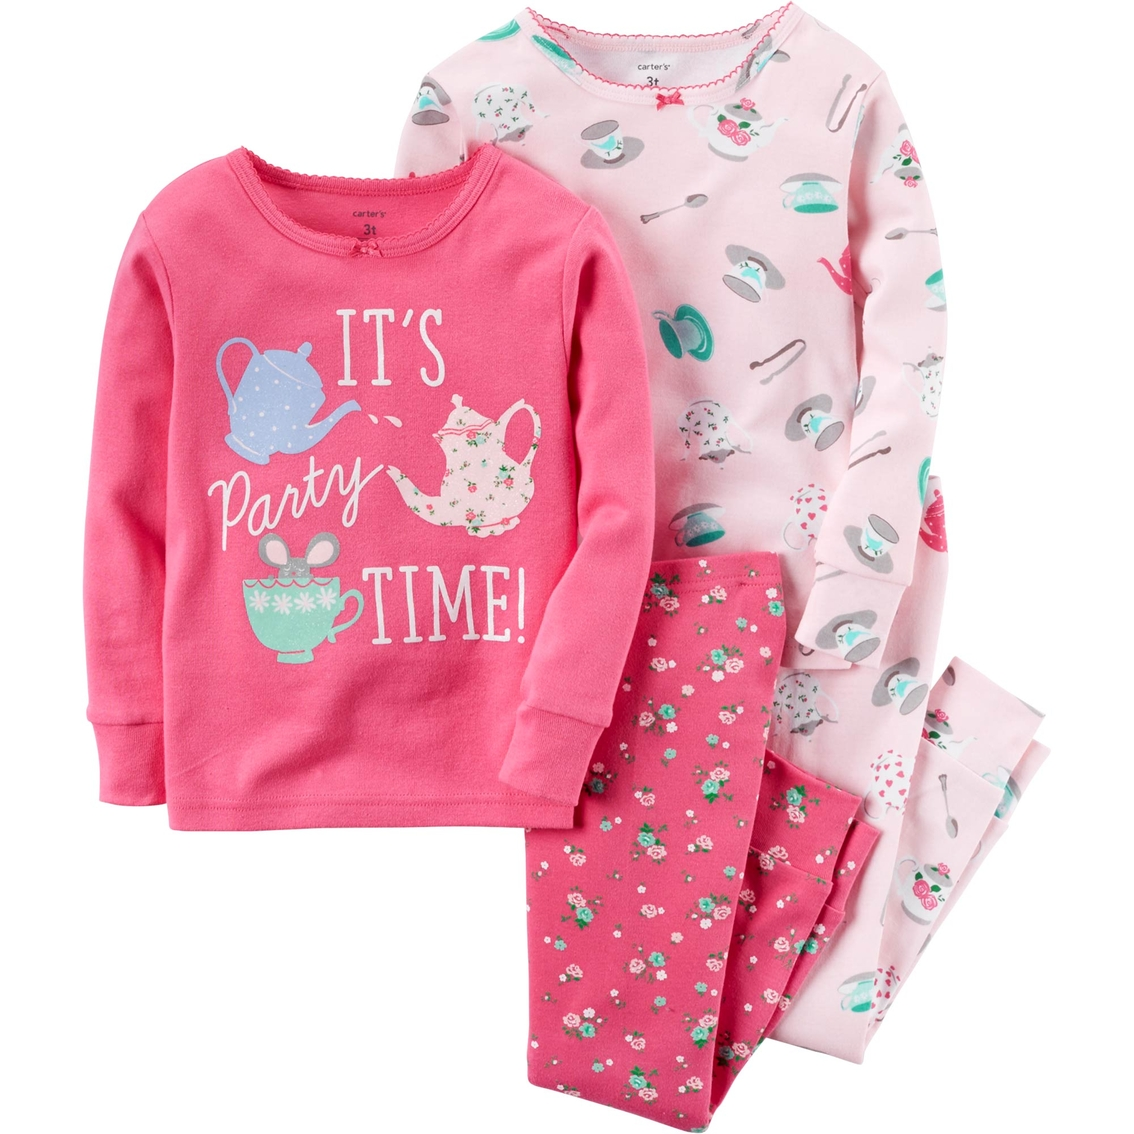 71396ee30 Carter s Toddler Girls 4 Pc. Party Time Snug Fit Cotton Pajamas ...